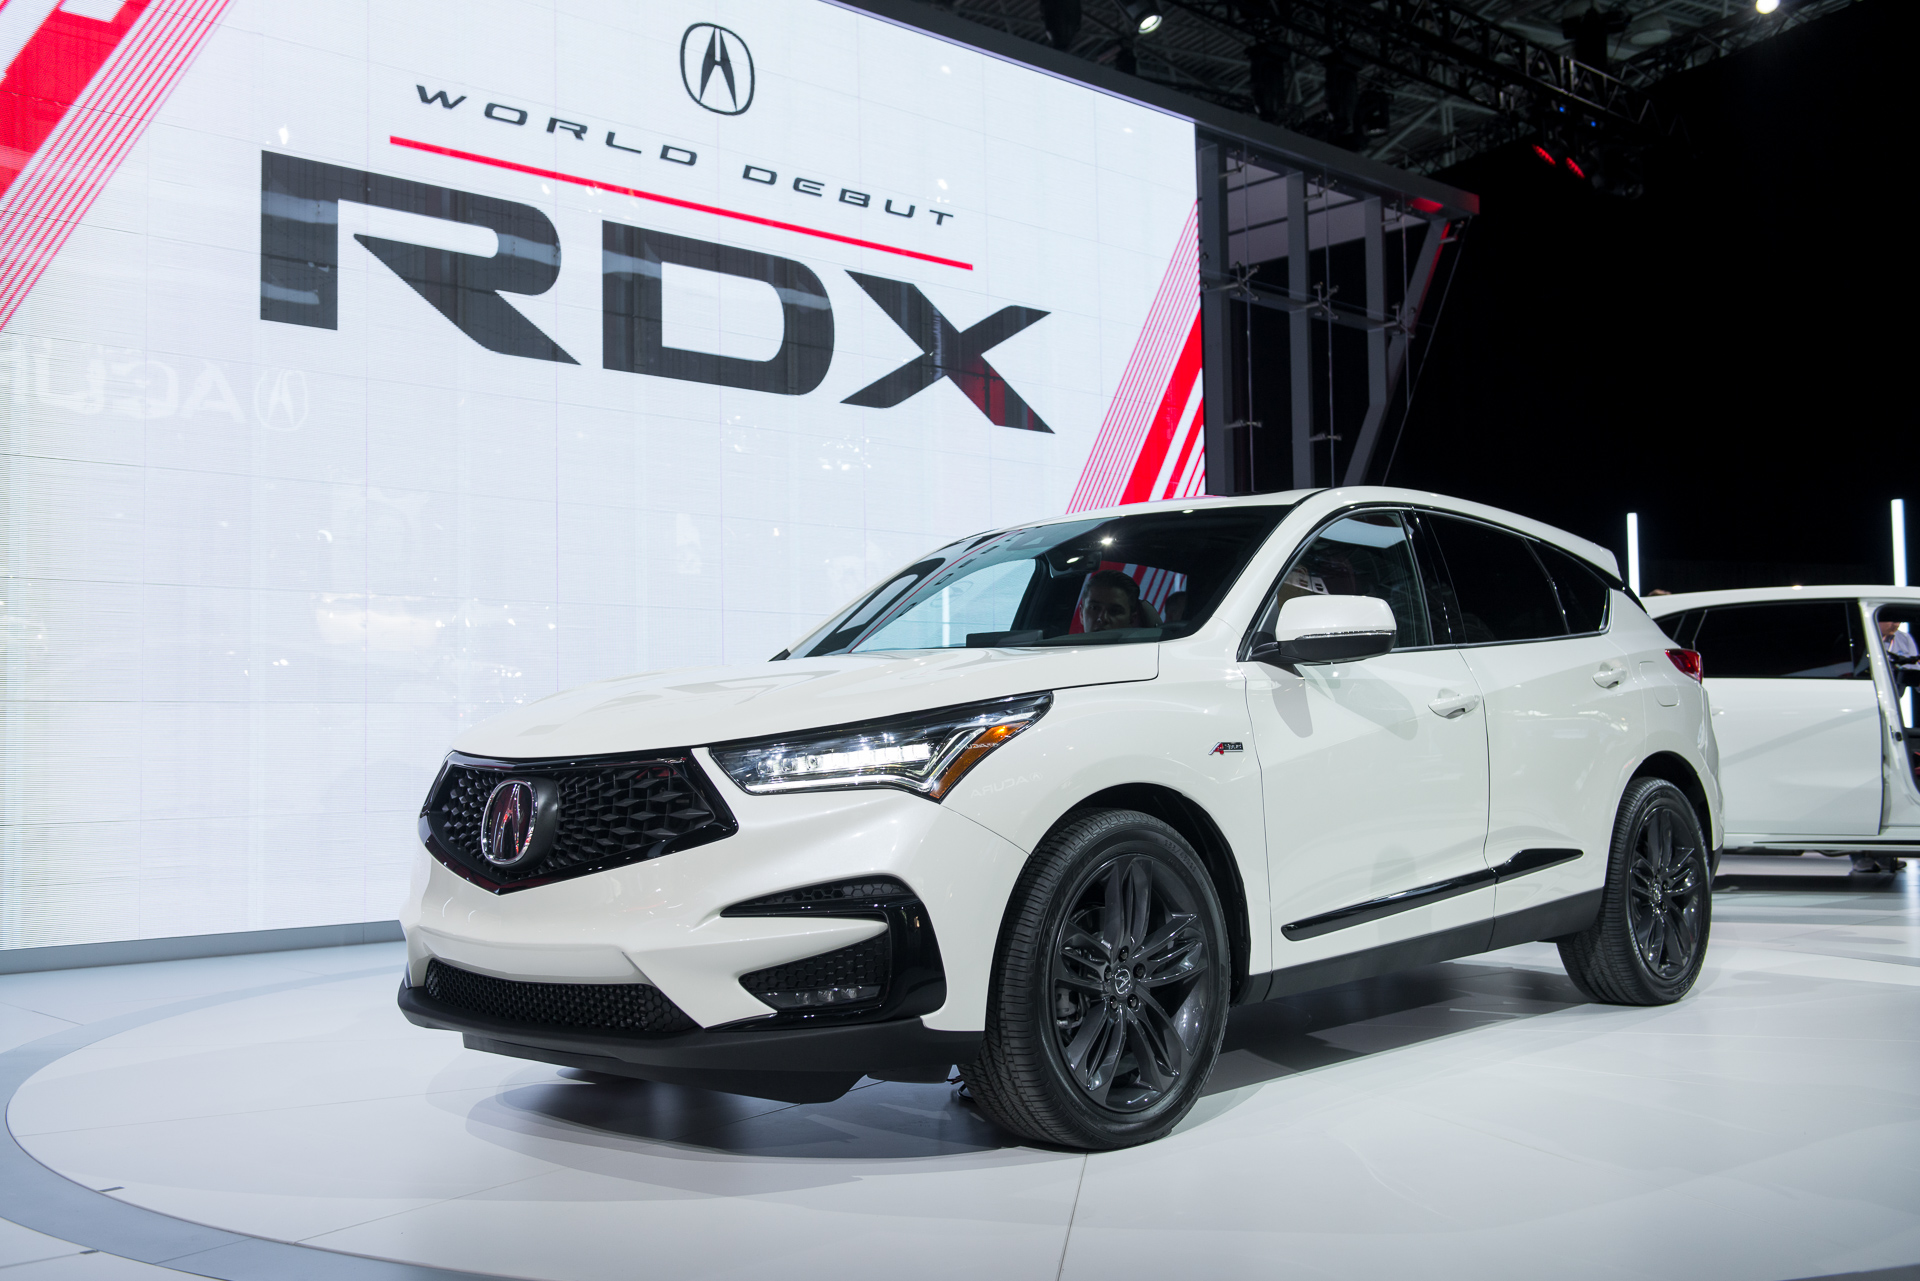 2019 Acura RDX preview